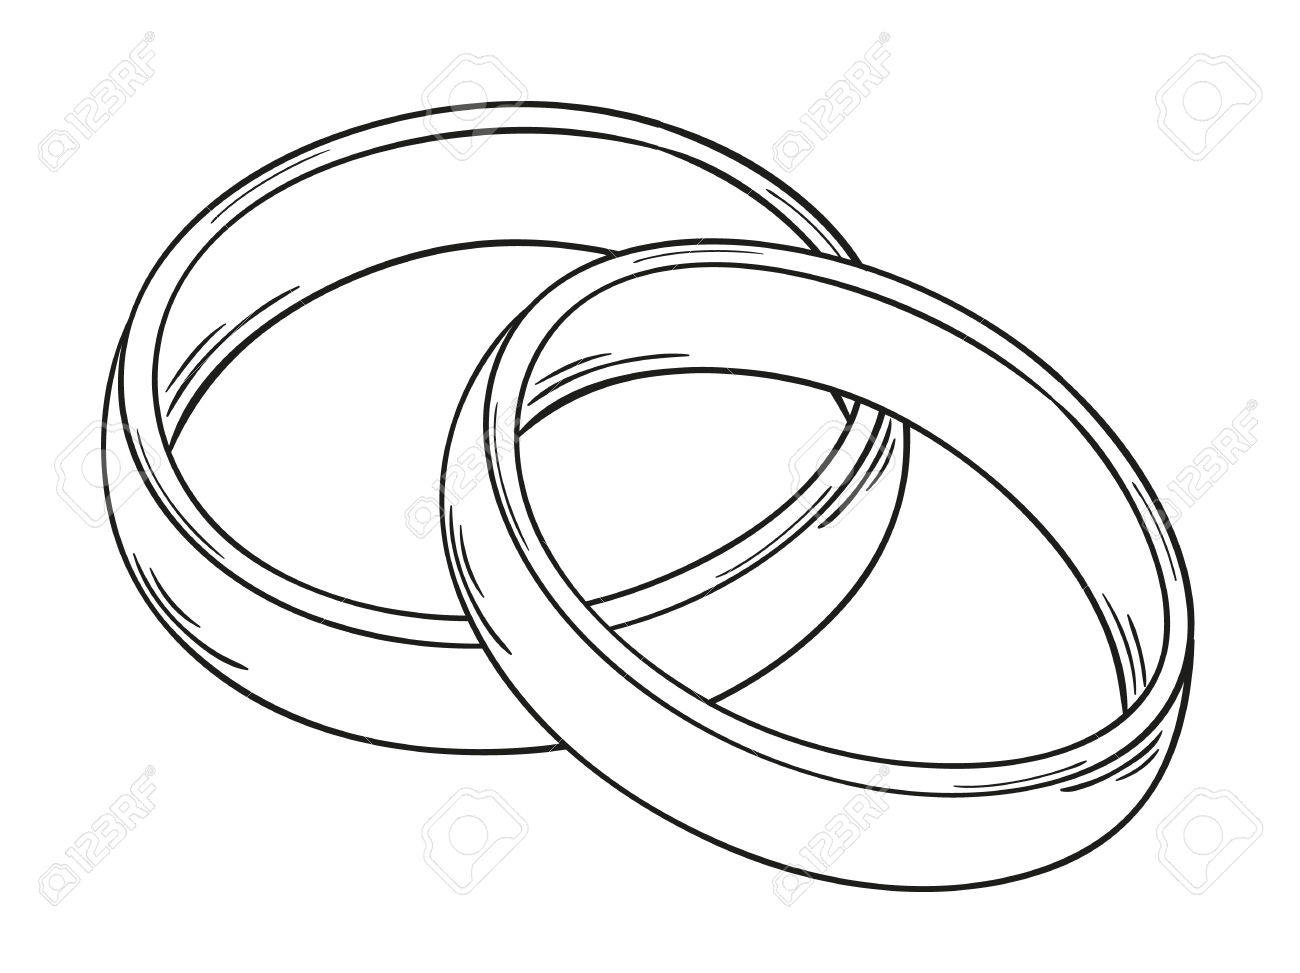 Two wedding rings clipart vector freeuse download Two wedding rings clipart - ClipartFox vector freeuse download